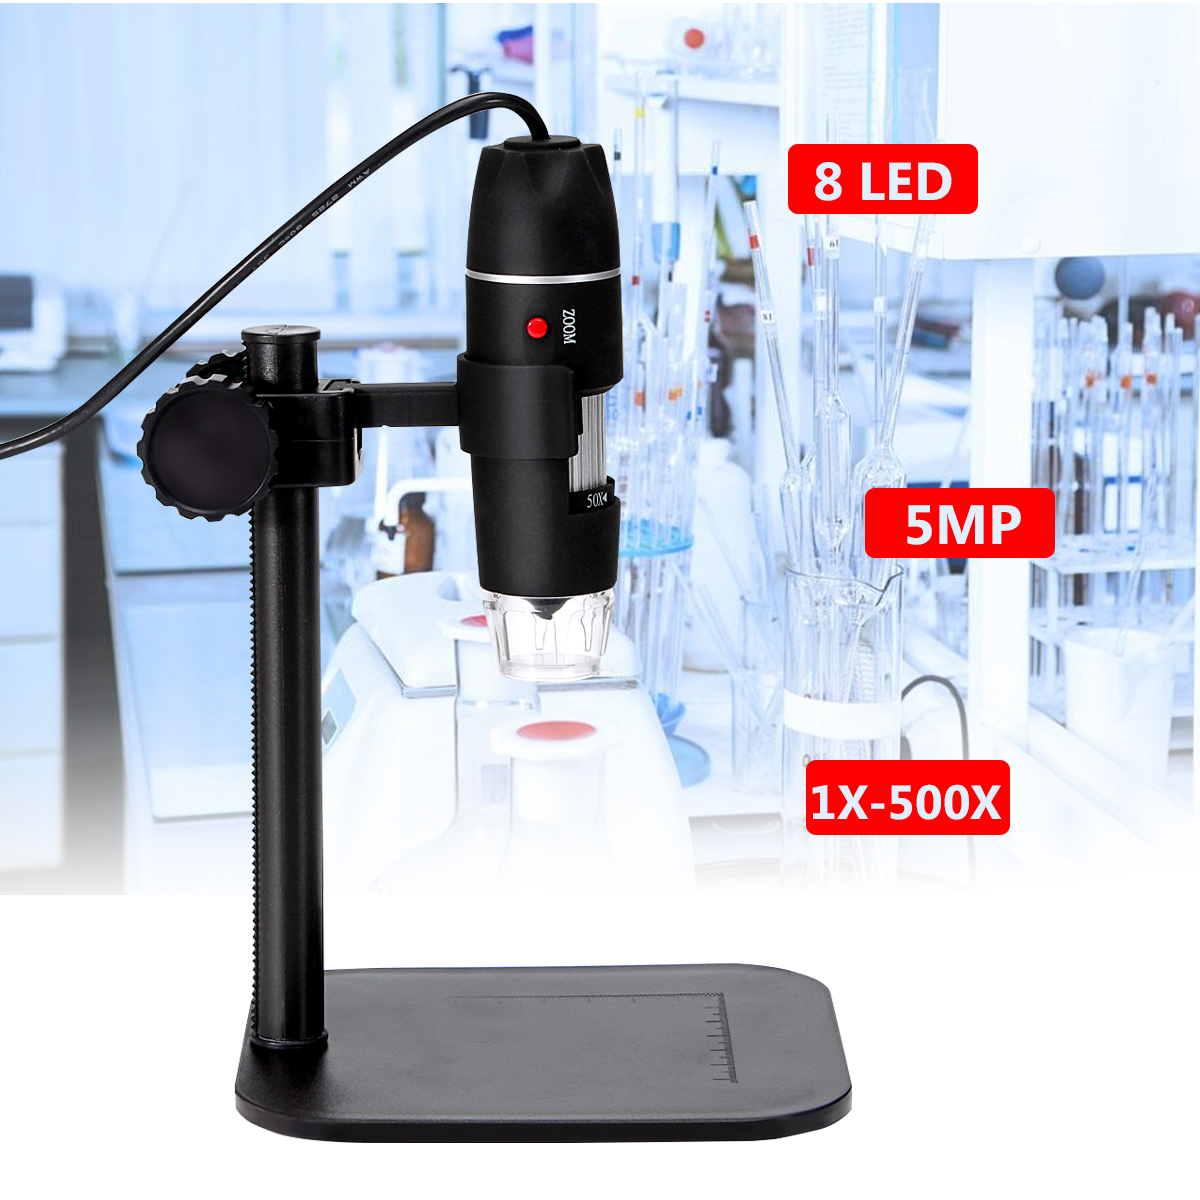 5MP 8 LED USB Digital Camera Microscope Magnifier with Black Stand 1X-500X 5V DC